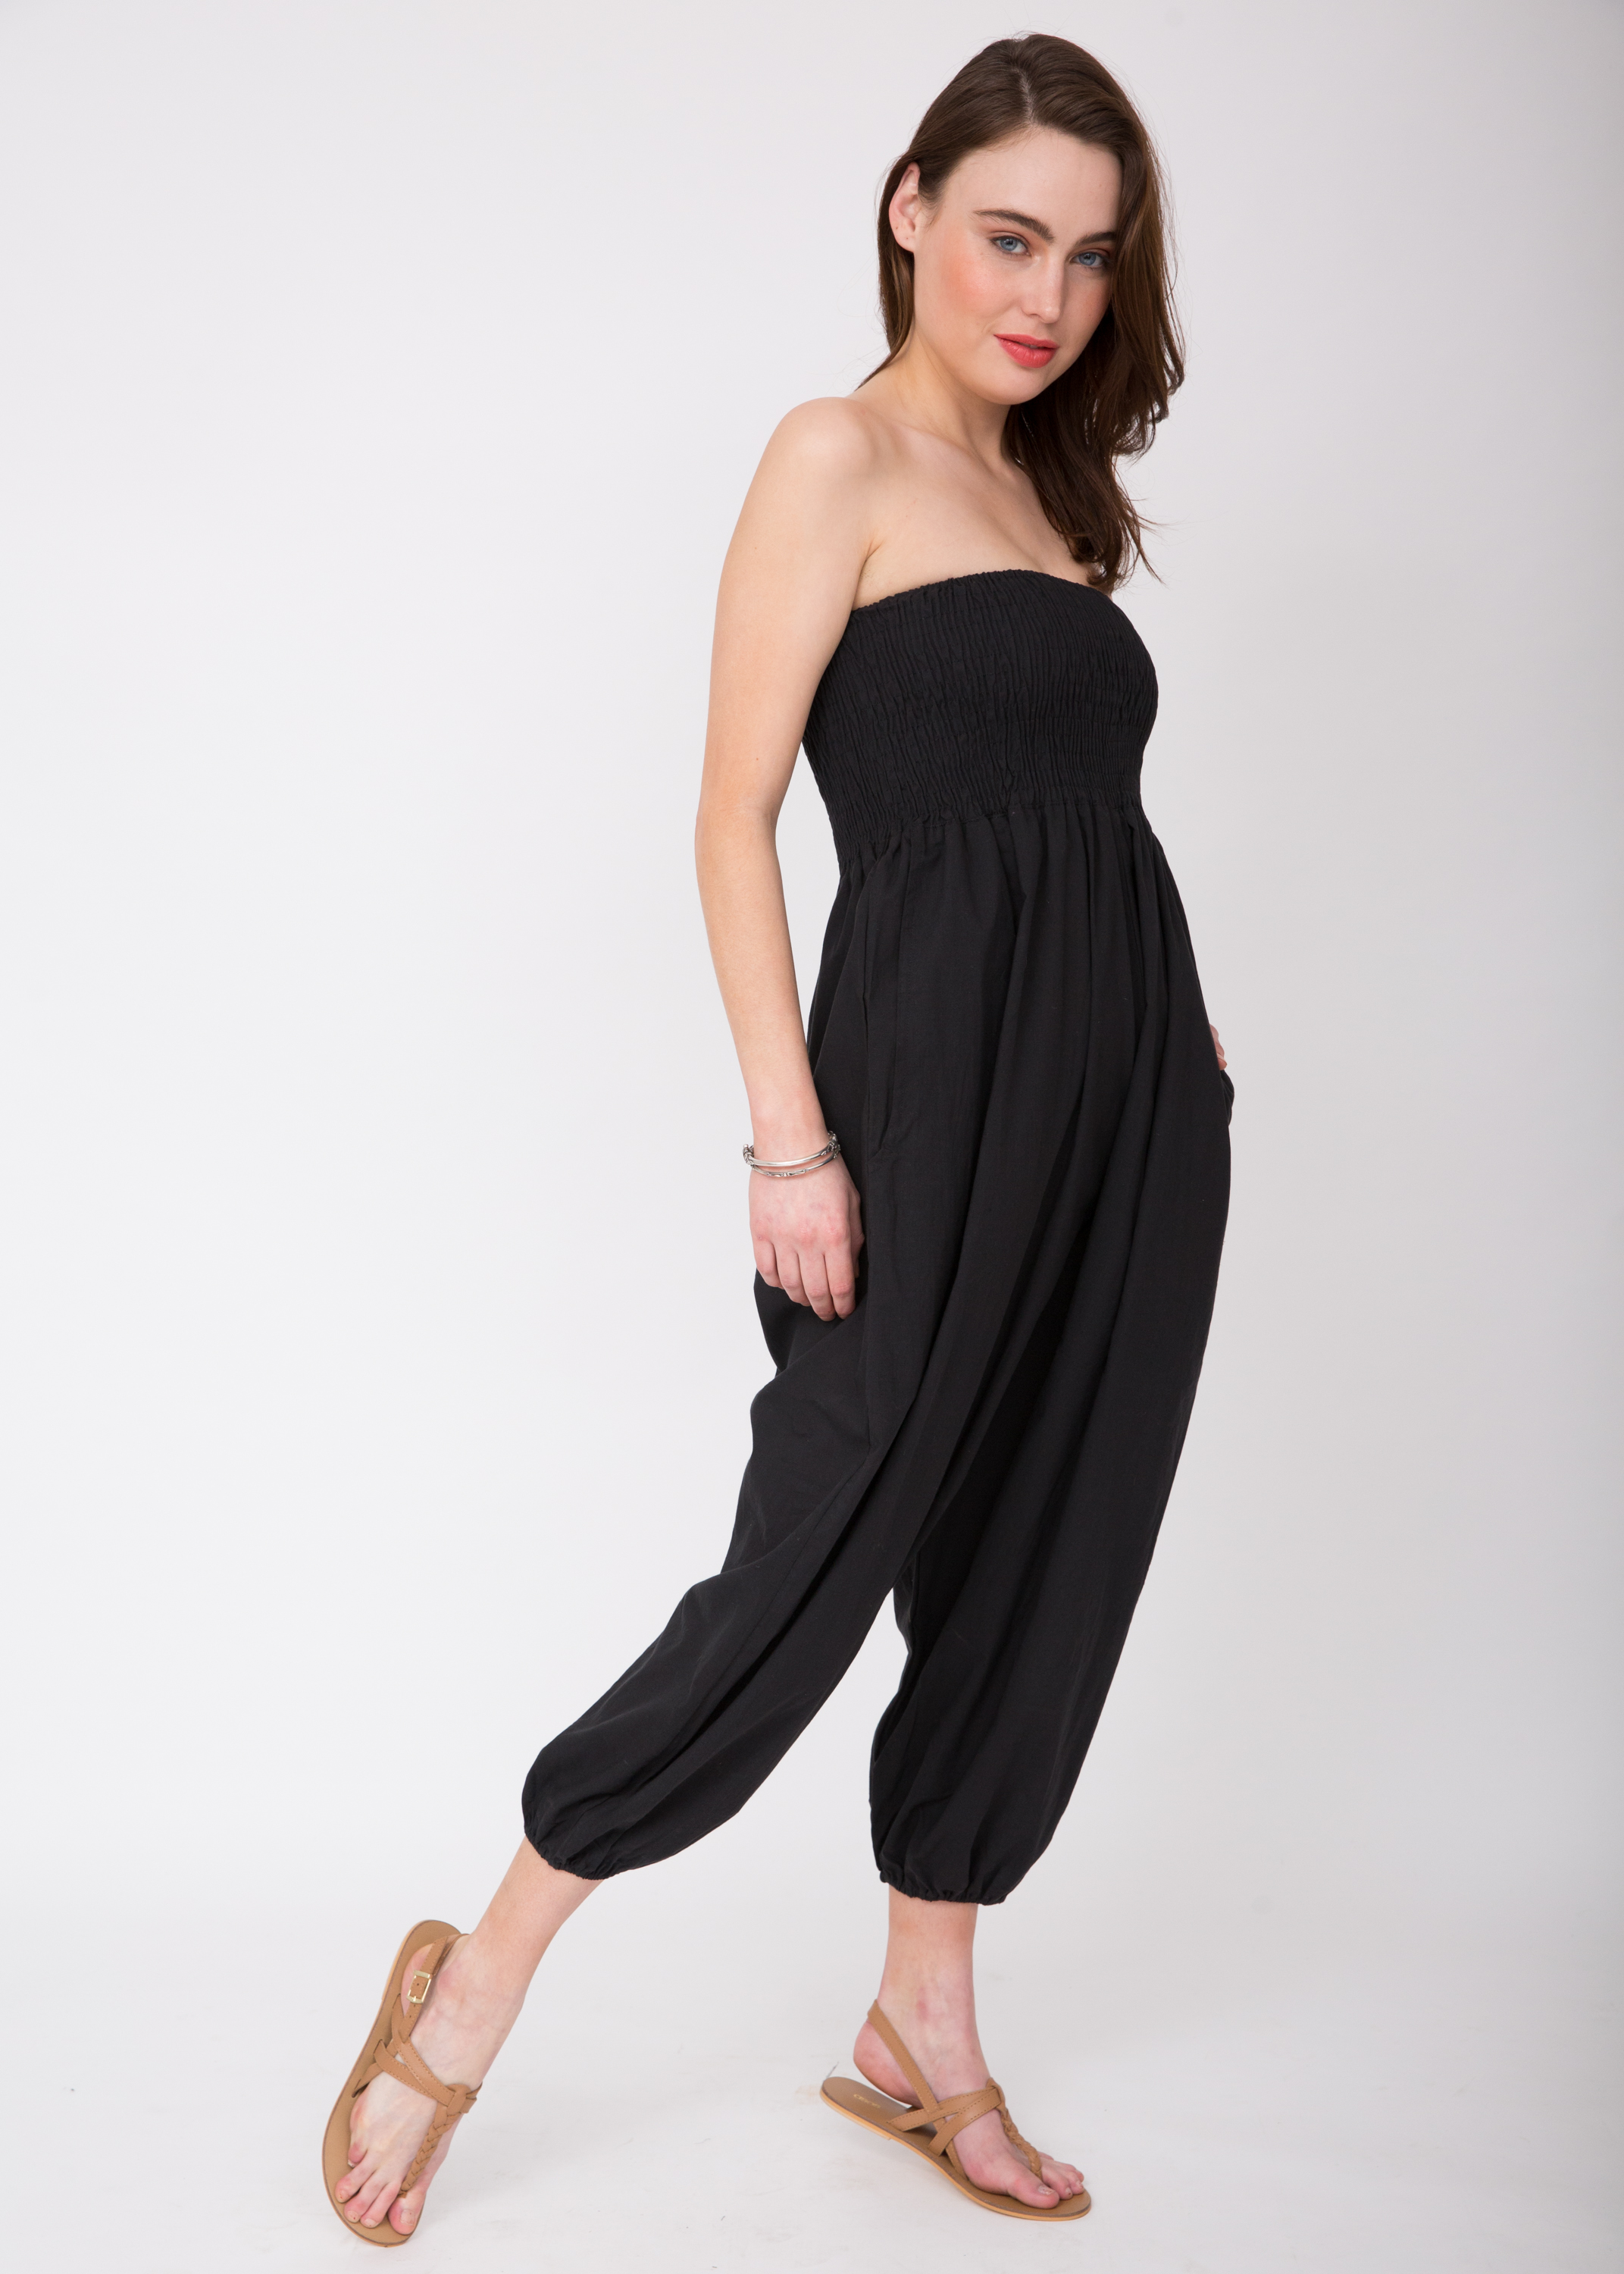 44a1adcb762 2 in 1 Cotton Harem Trouser or Bandeau Jumpsuit Black – likemary